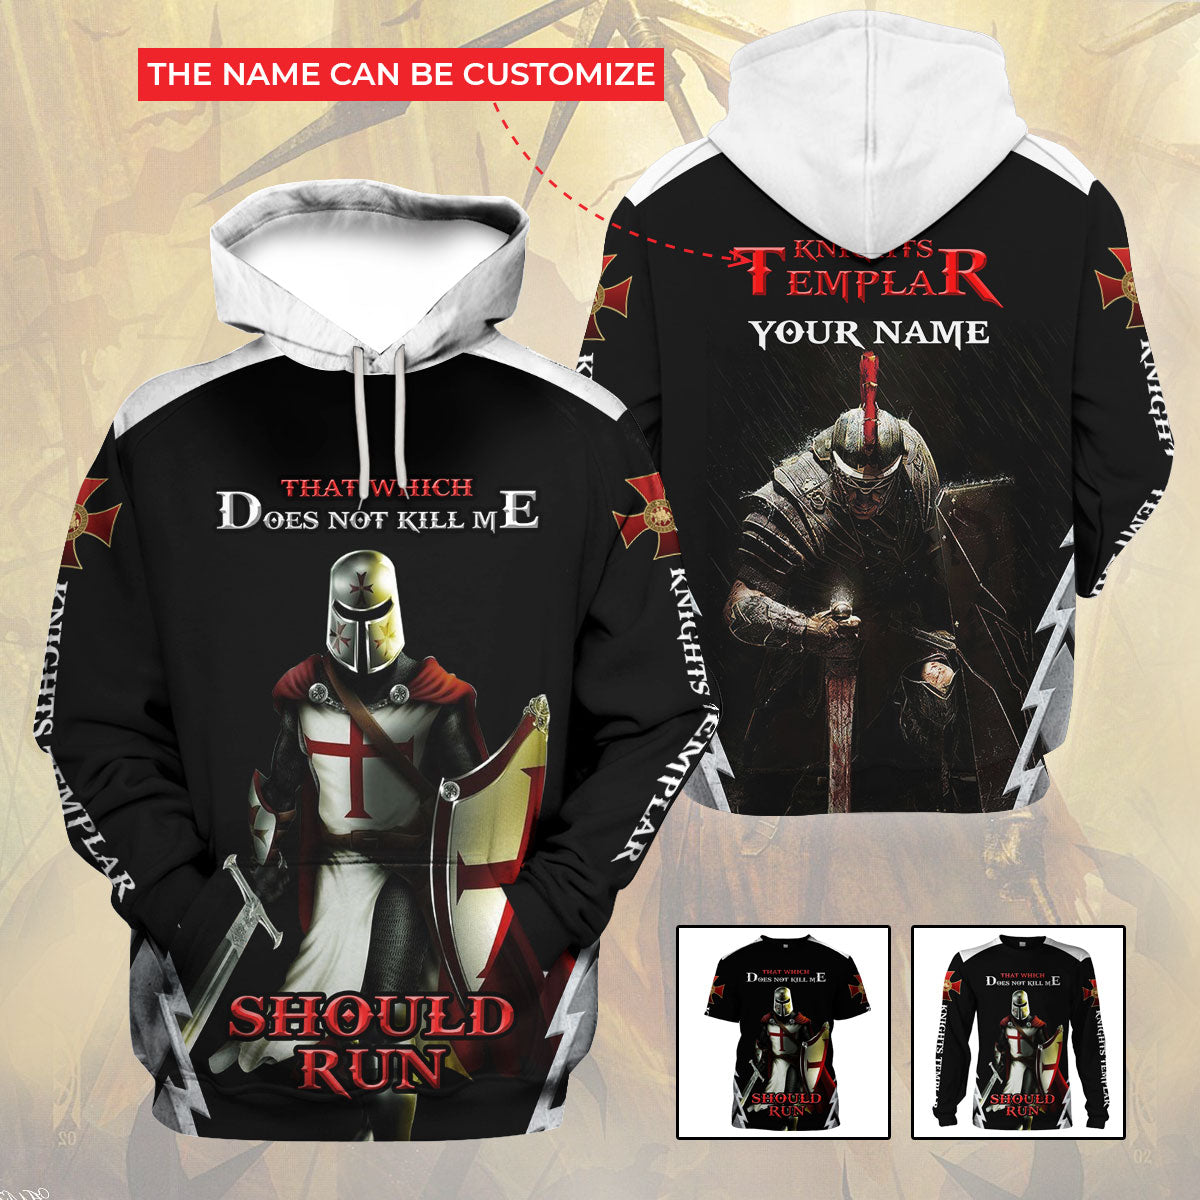 3D Knights Templar Hoodie - What which does not kill me should run